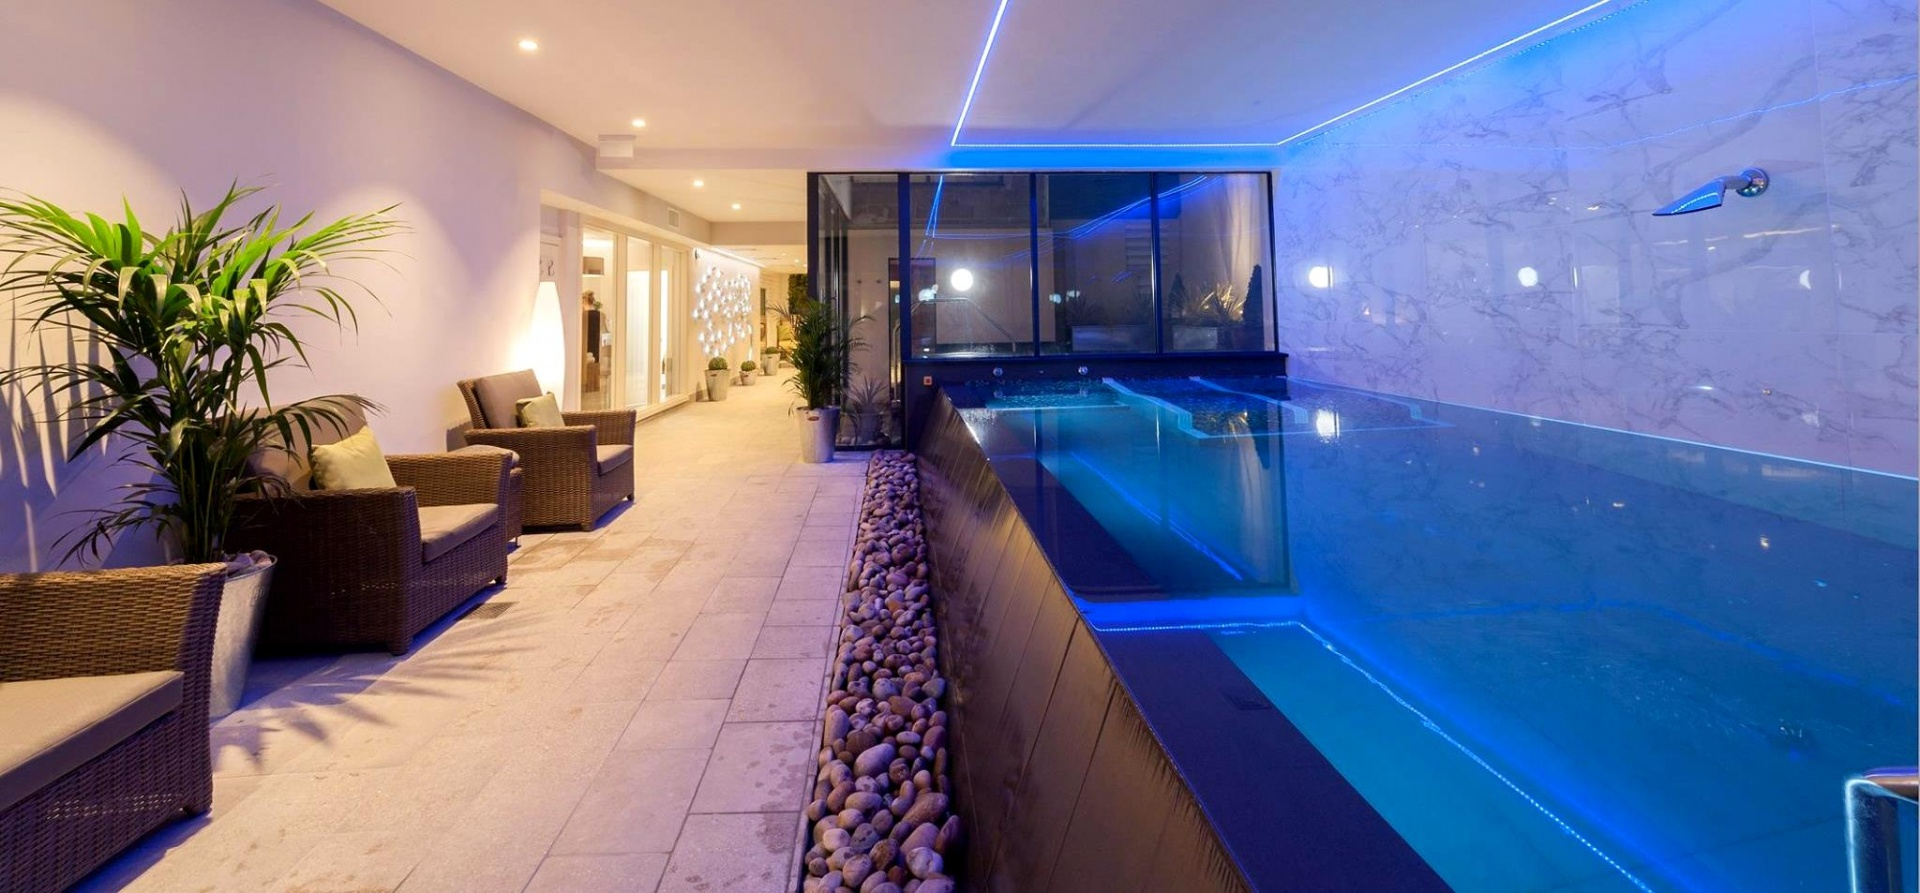 'Extravagance' Full Day Spa Package - Cumbria-3